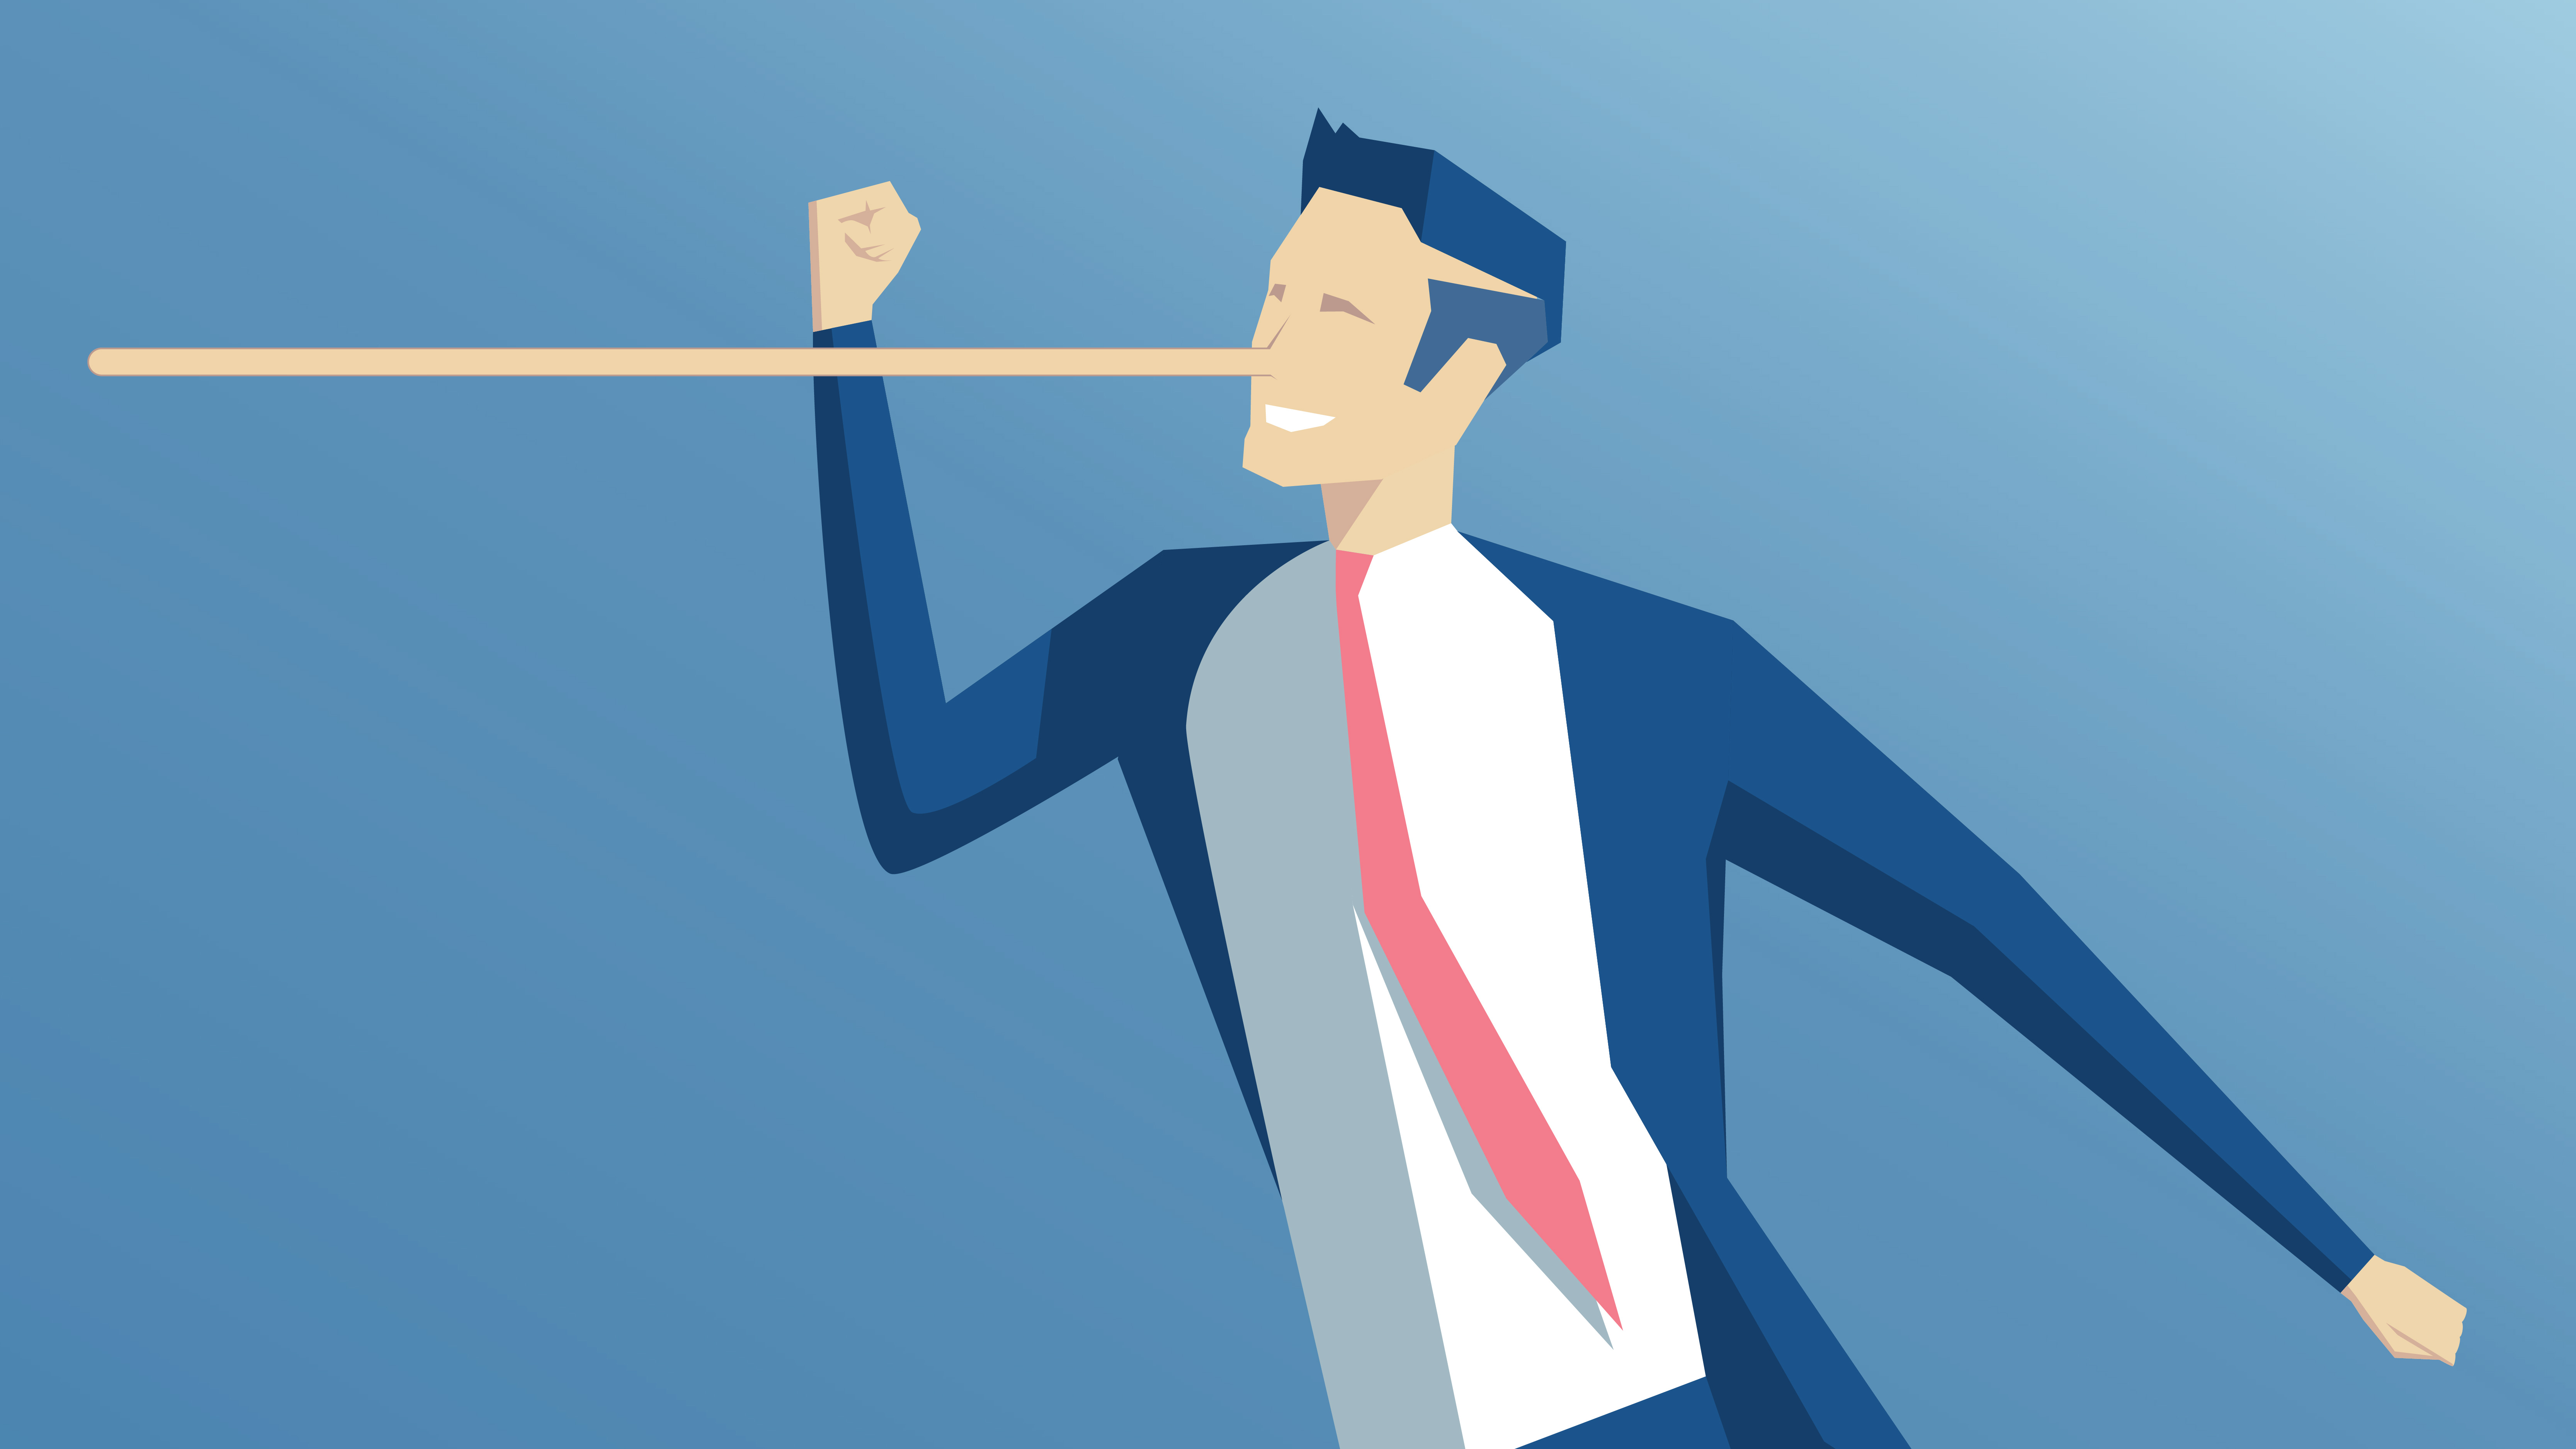 Caught in a Resume Lie: Recruiters Share Stories of Fibbing